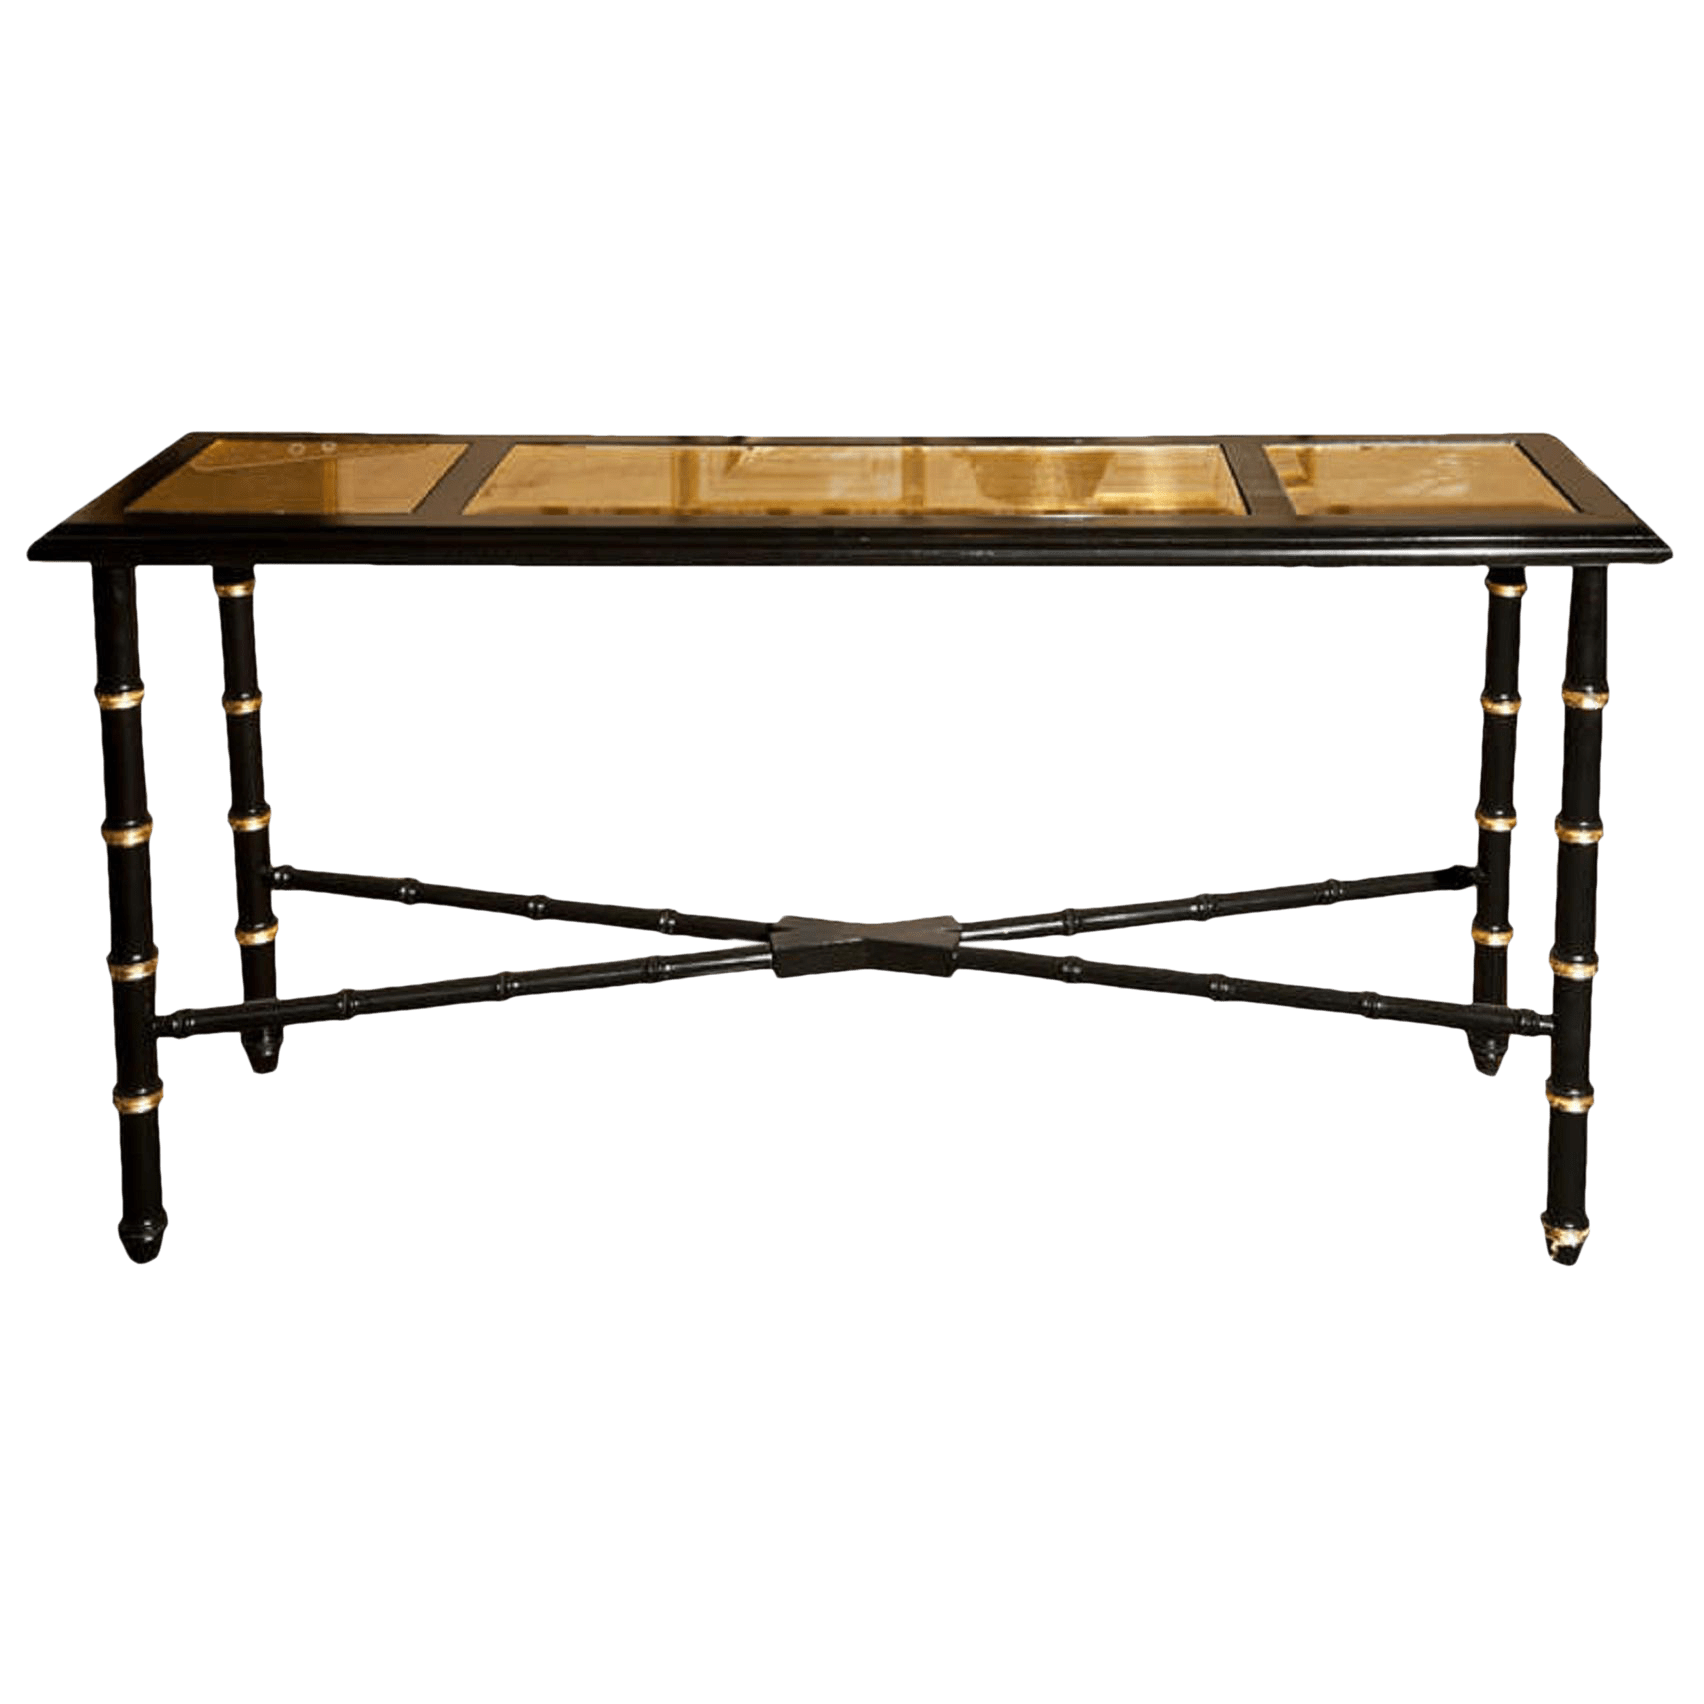 legare bamboo sofa table best cover for leather couch distinguished hollywood regency faux console